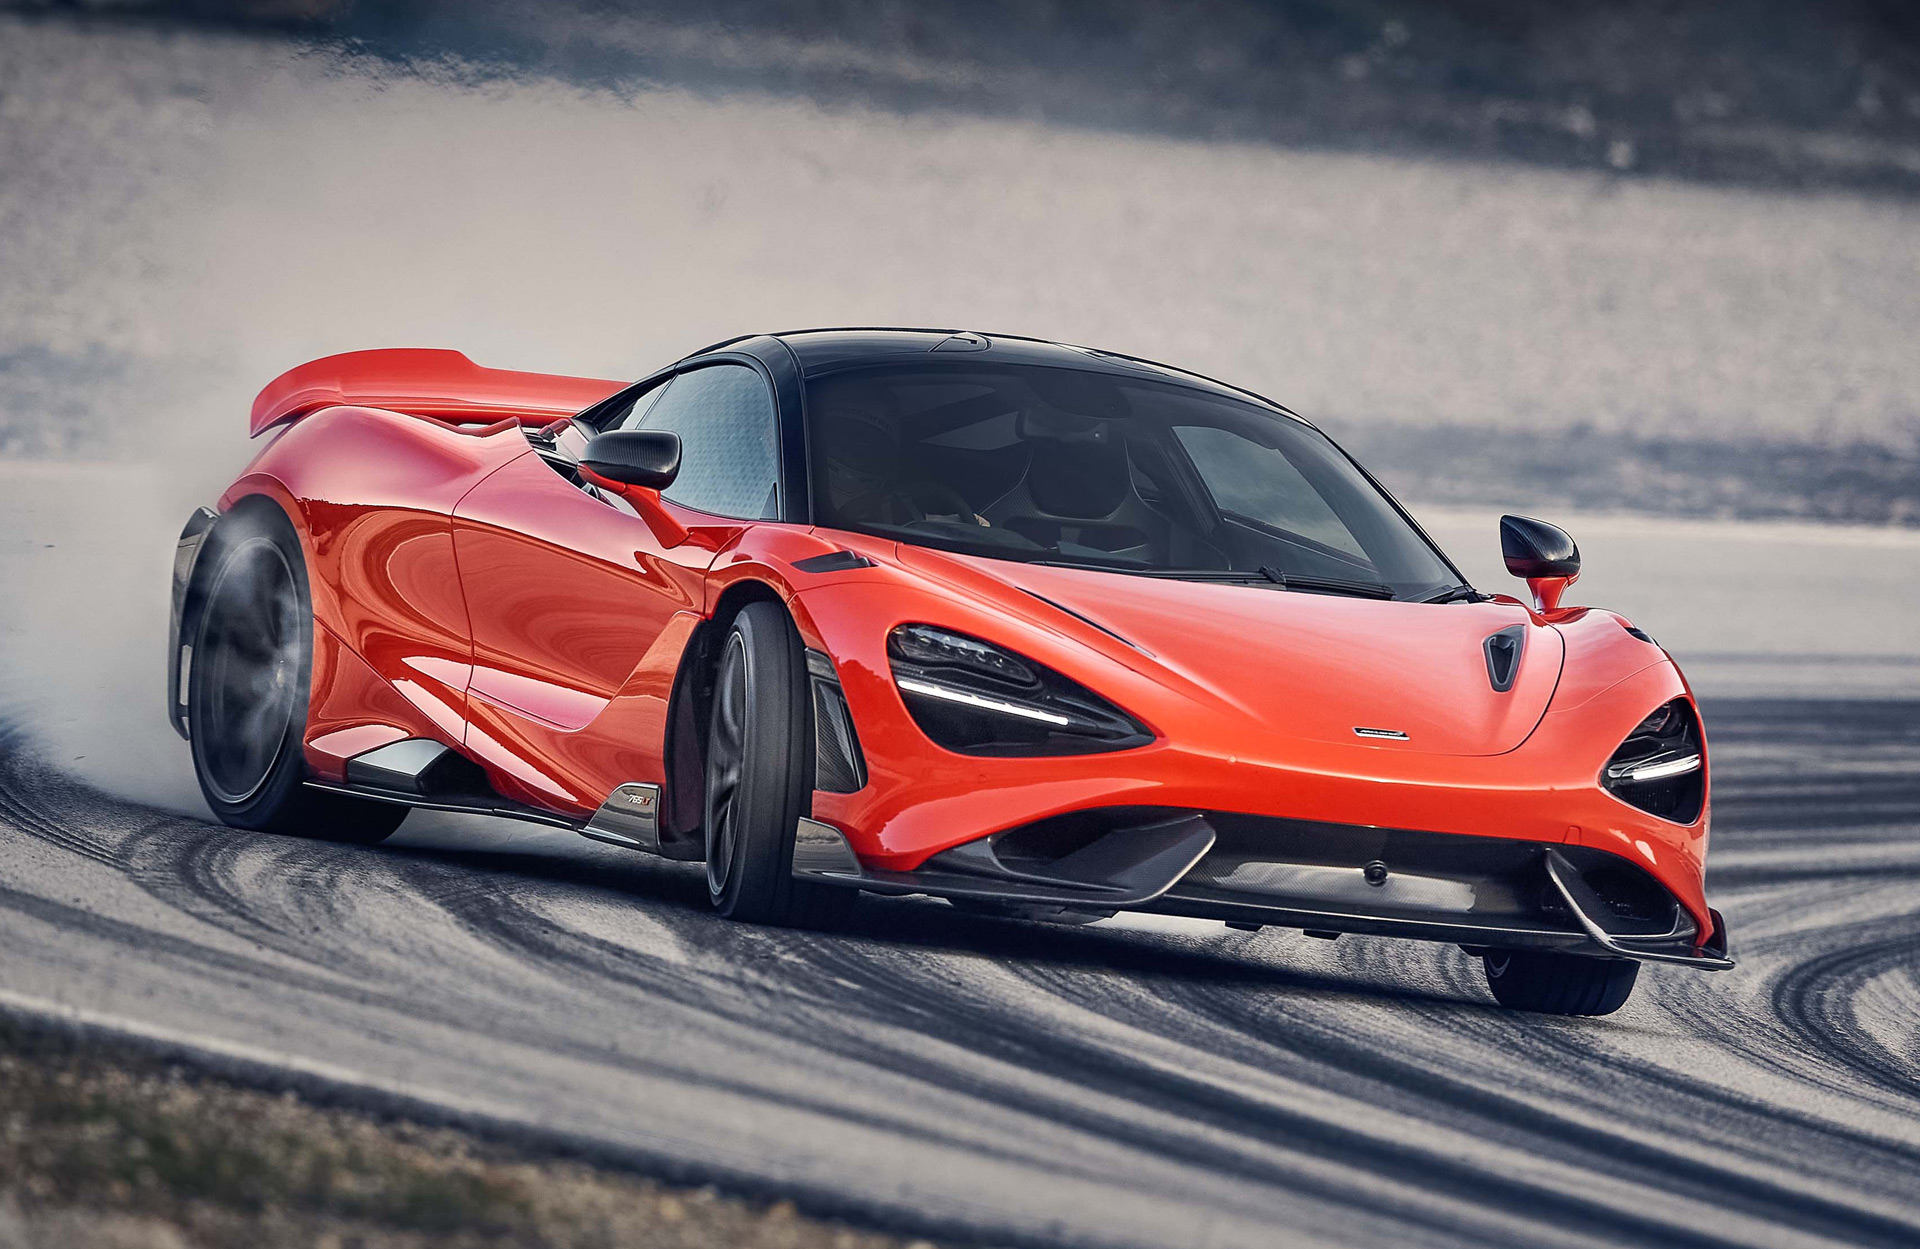 McLaren plug-in hybrid sports car could have 20-mile electric range,  arrives late 2020